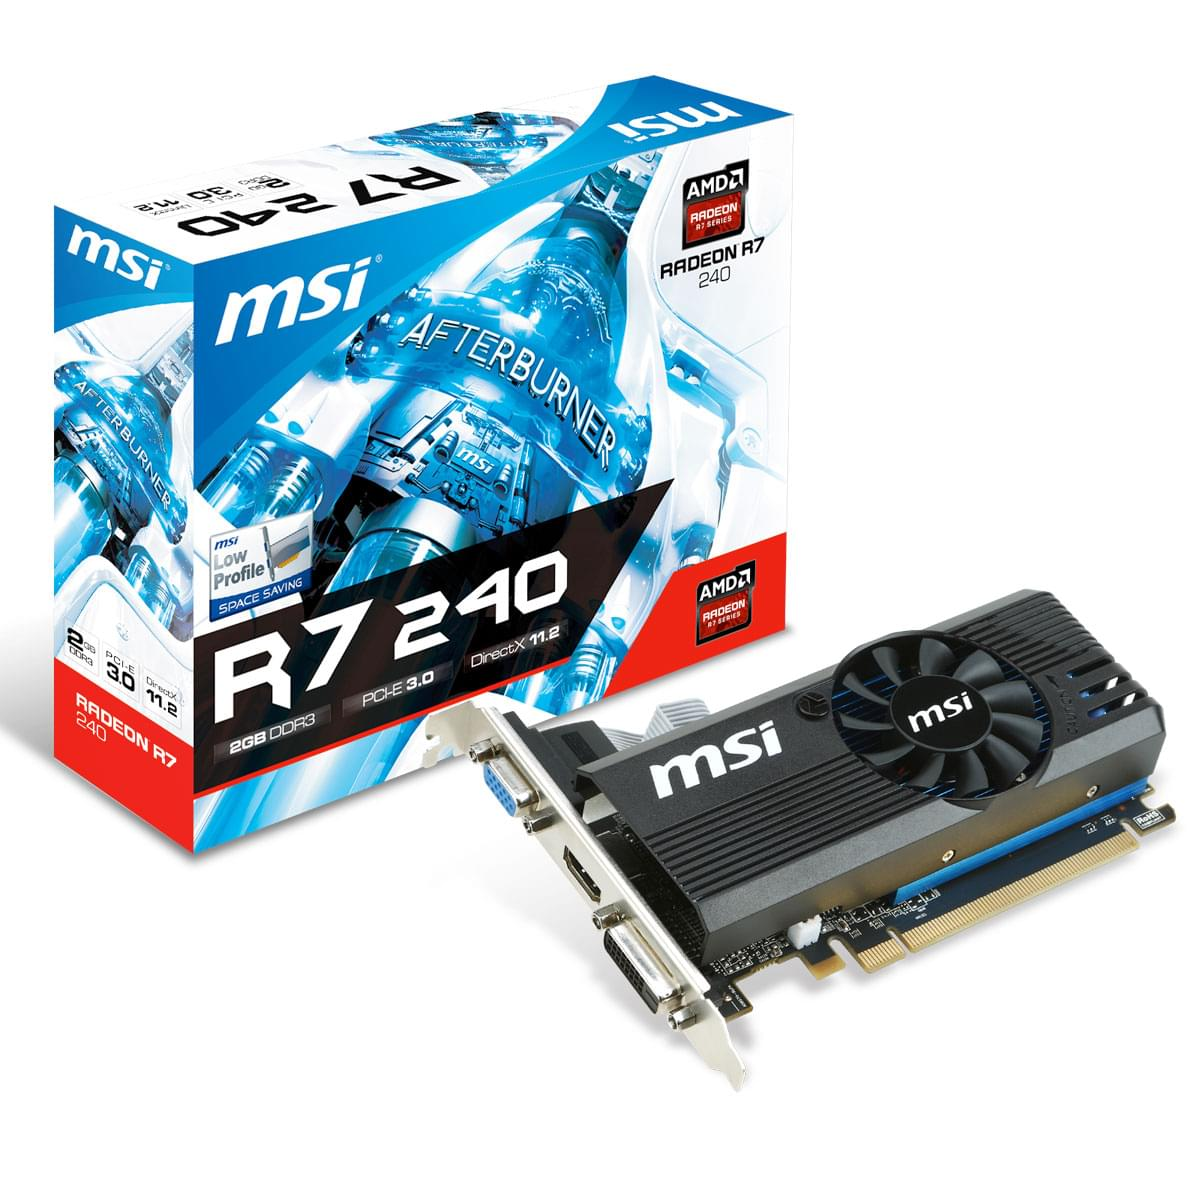 MSI R7 240 2GD3 LP 2Go - Carte graphique MSI - Cybertek.fr - 0